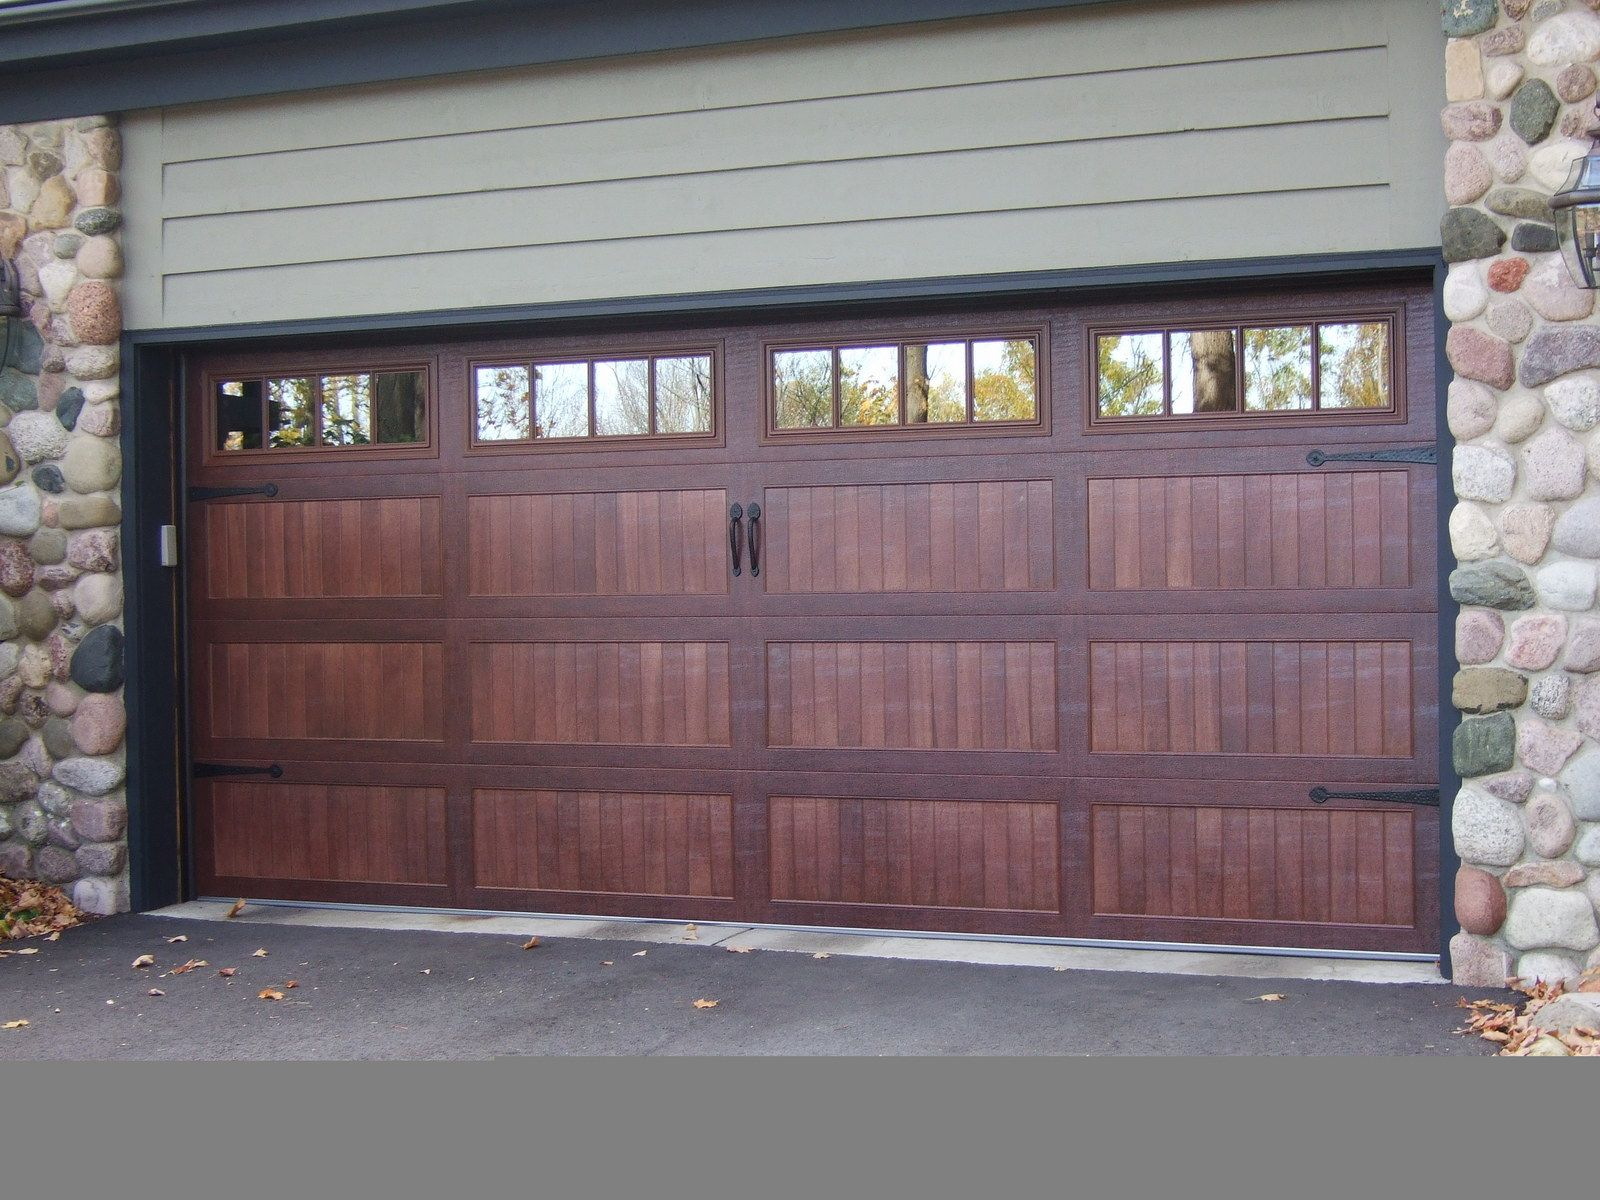 New Accents Series From Chi Accents Series 16x7 59xx Ch Industries Com Residential Garage Doors Chi Garage Doors Carriage Garage Doors